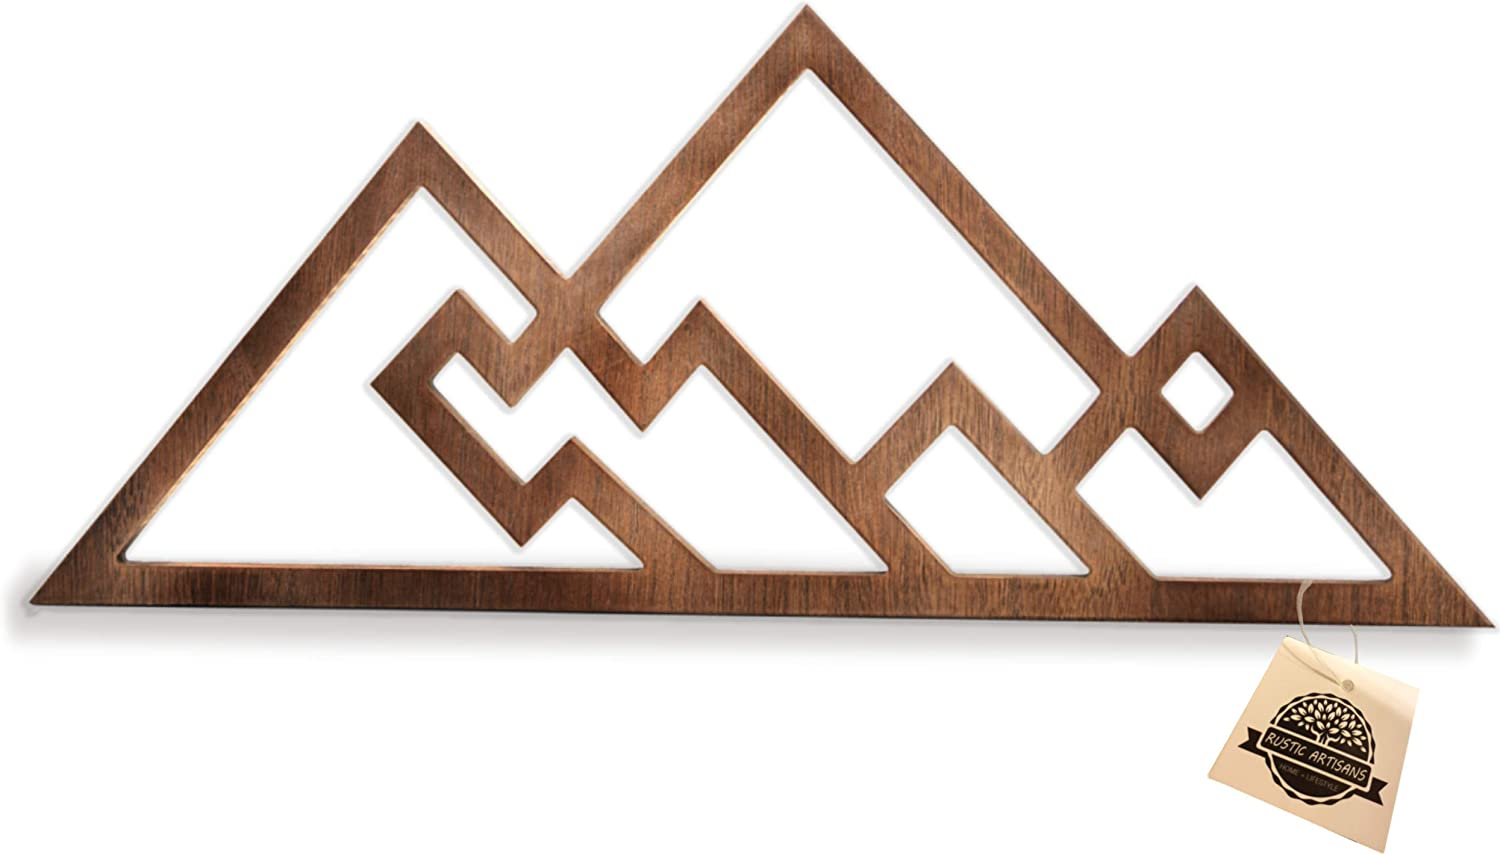 Mountain Wall Decor for Home or Office - Rustic Home Decor in Walnut Stain Color That's Perfect for Your Rustic Home, Farmhouse or Bedroom Wall - 22 X 9 inches